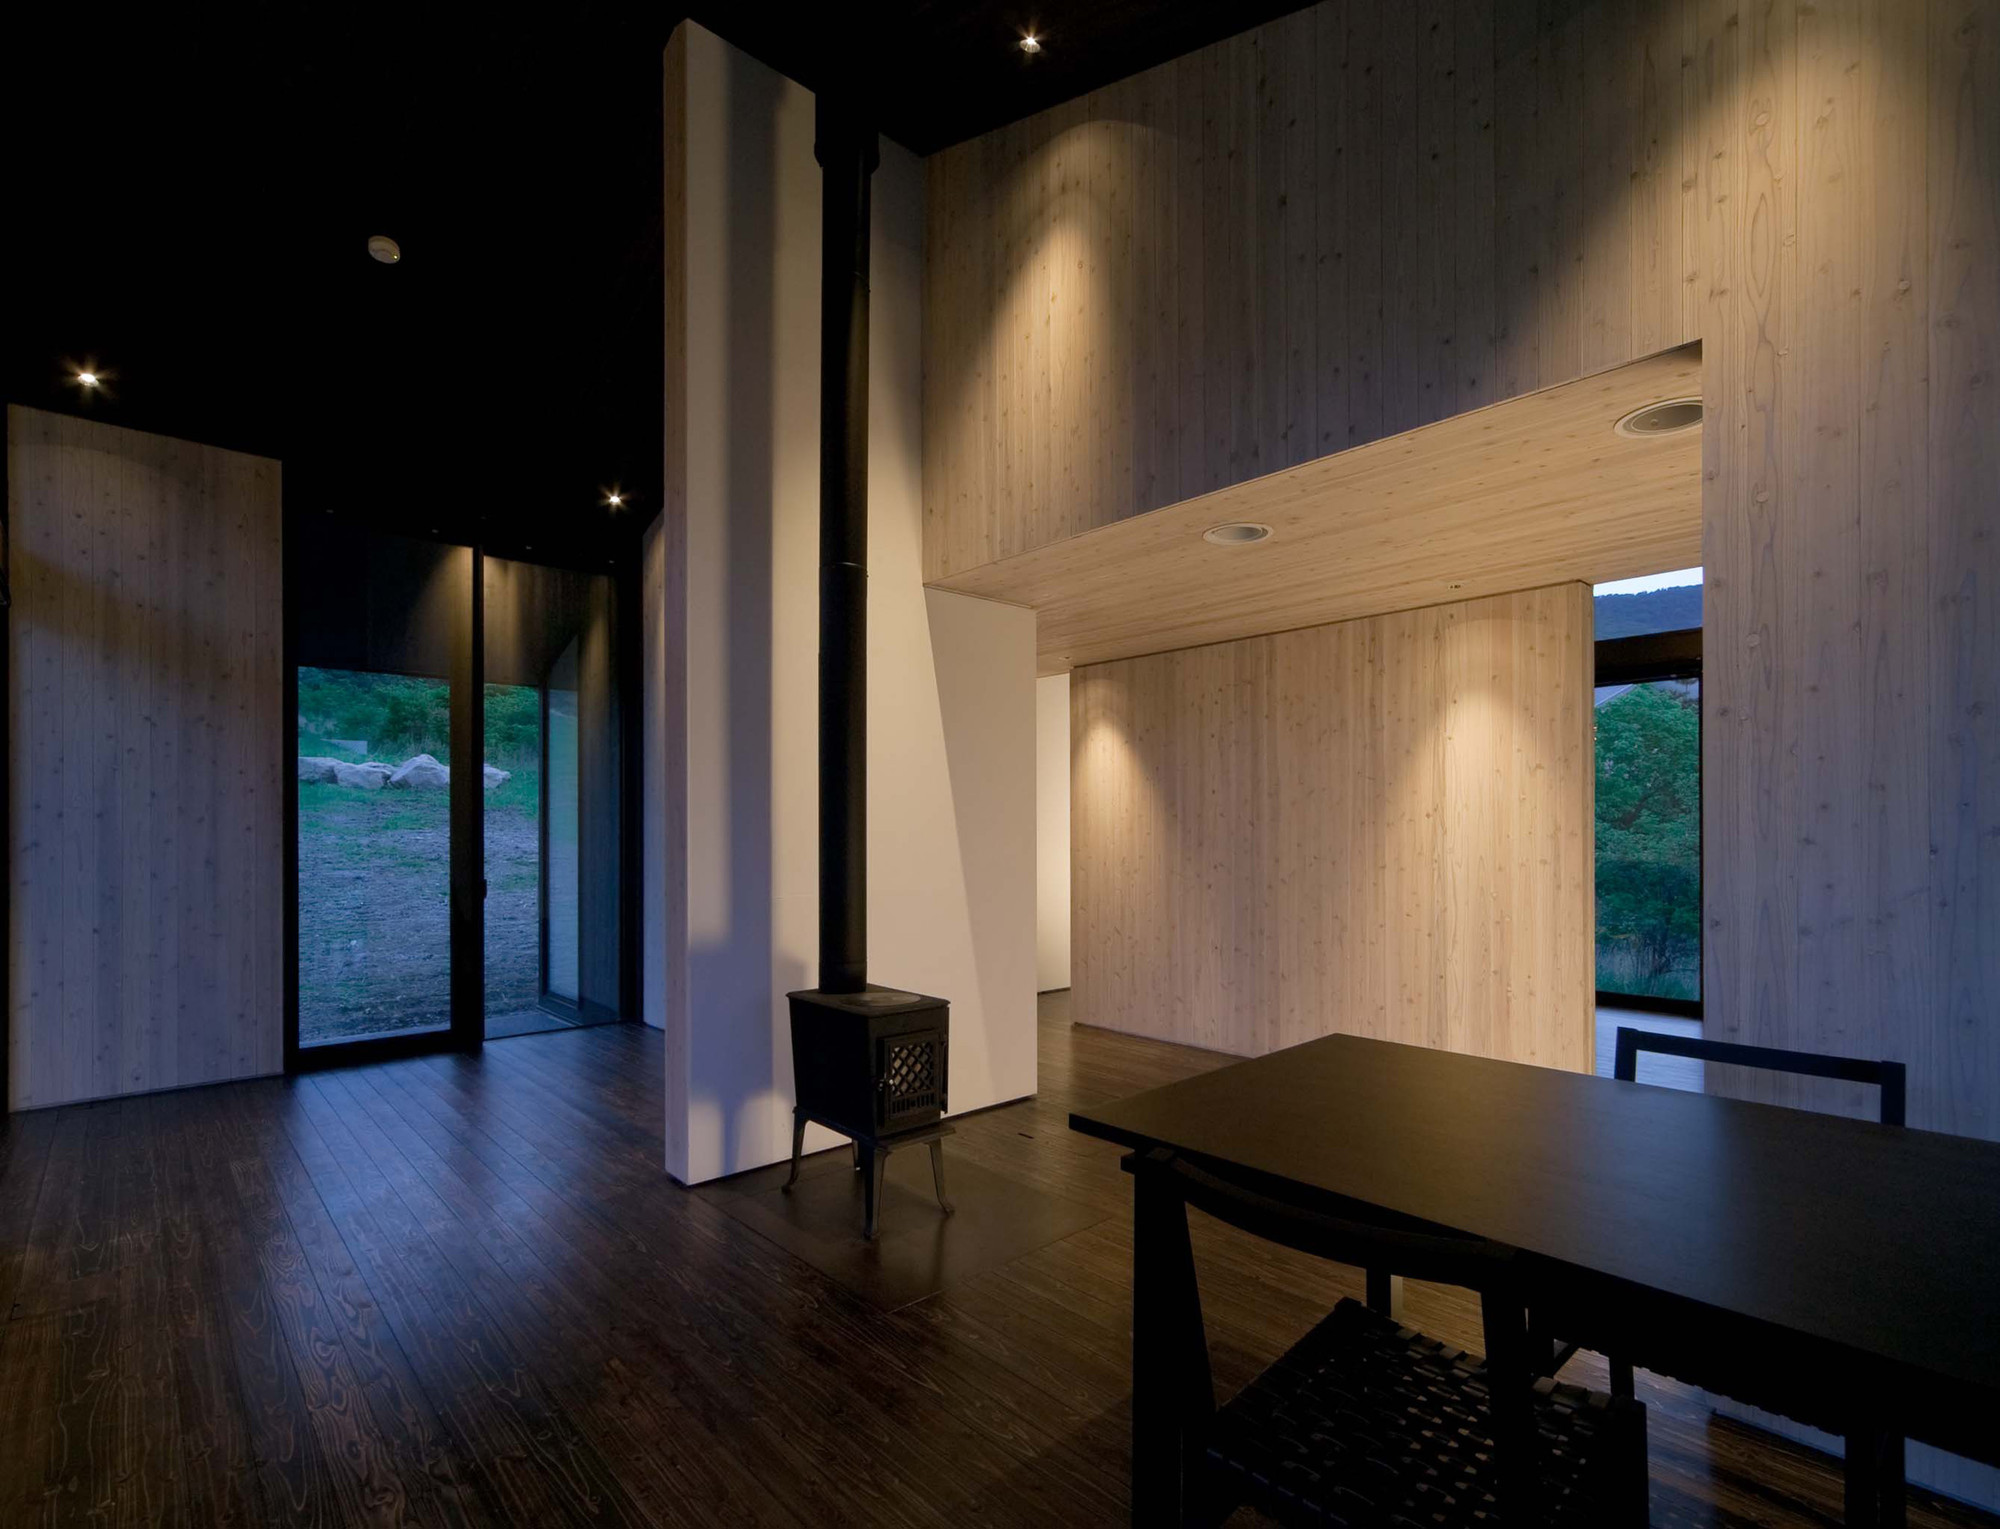 W-House / Uchida Architect Design Office